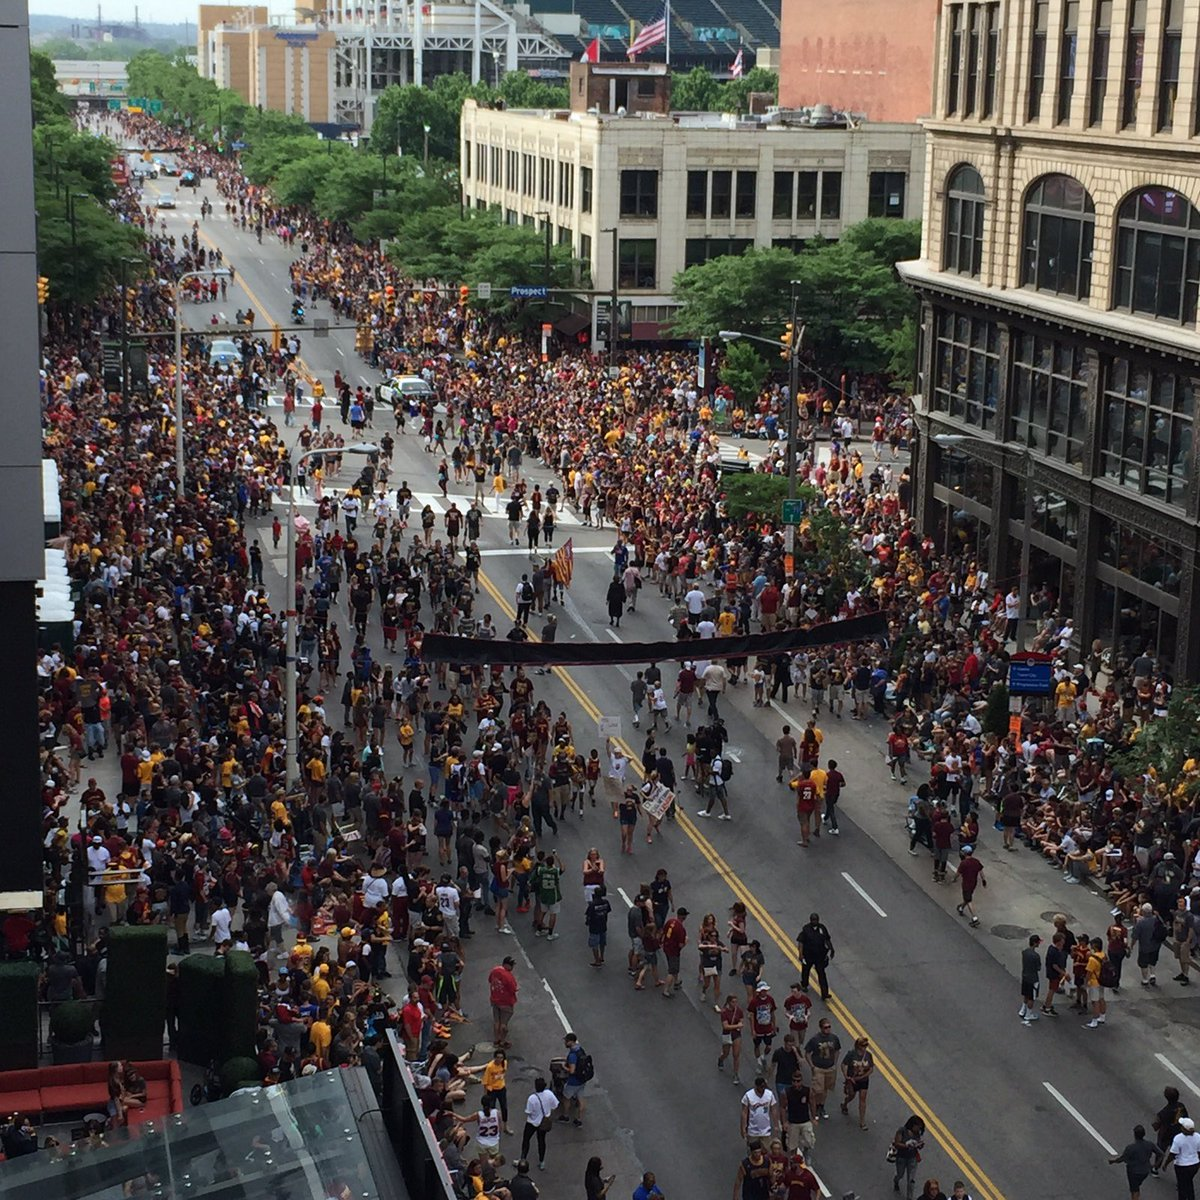 Cavs Nation! #allin216 #dtcle #CavsParade #OneForTheLand https://t.co/1MHZWodeZD